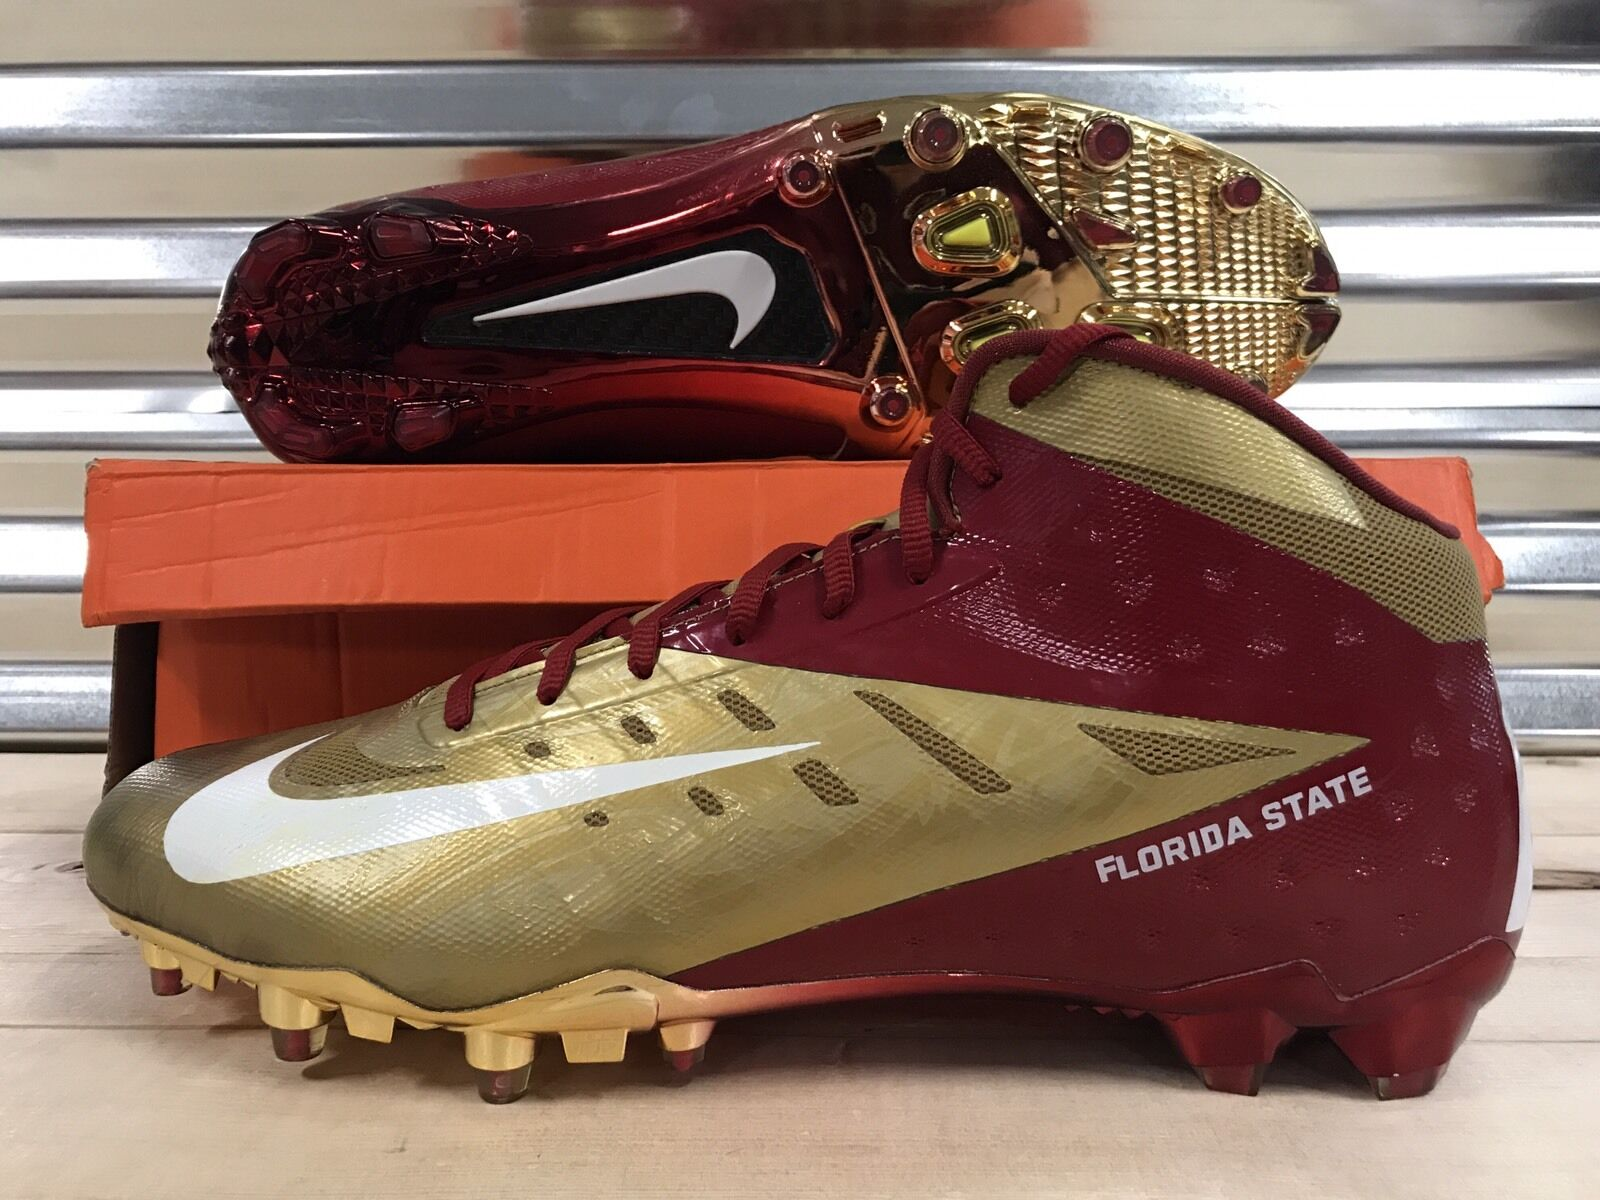 Nike Vapor Talon Elite 3/4 Football Florida State Seminoles FSU Football 3/4 Cleats PE SZ 15 15ec14